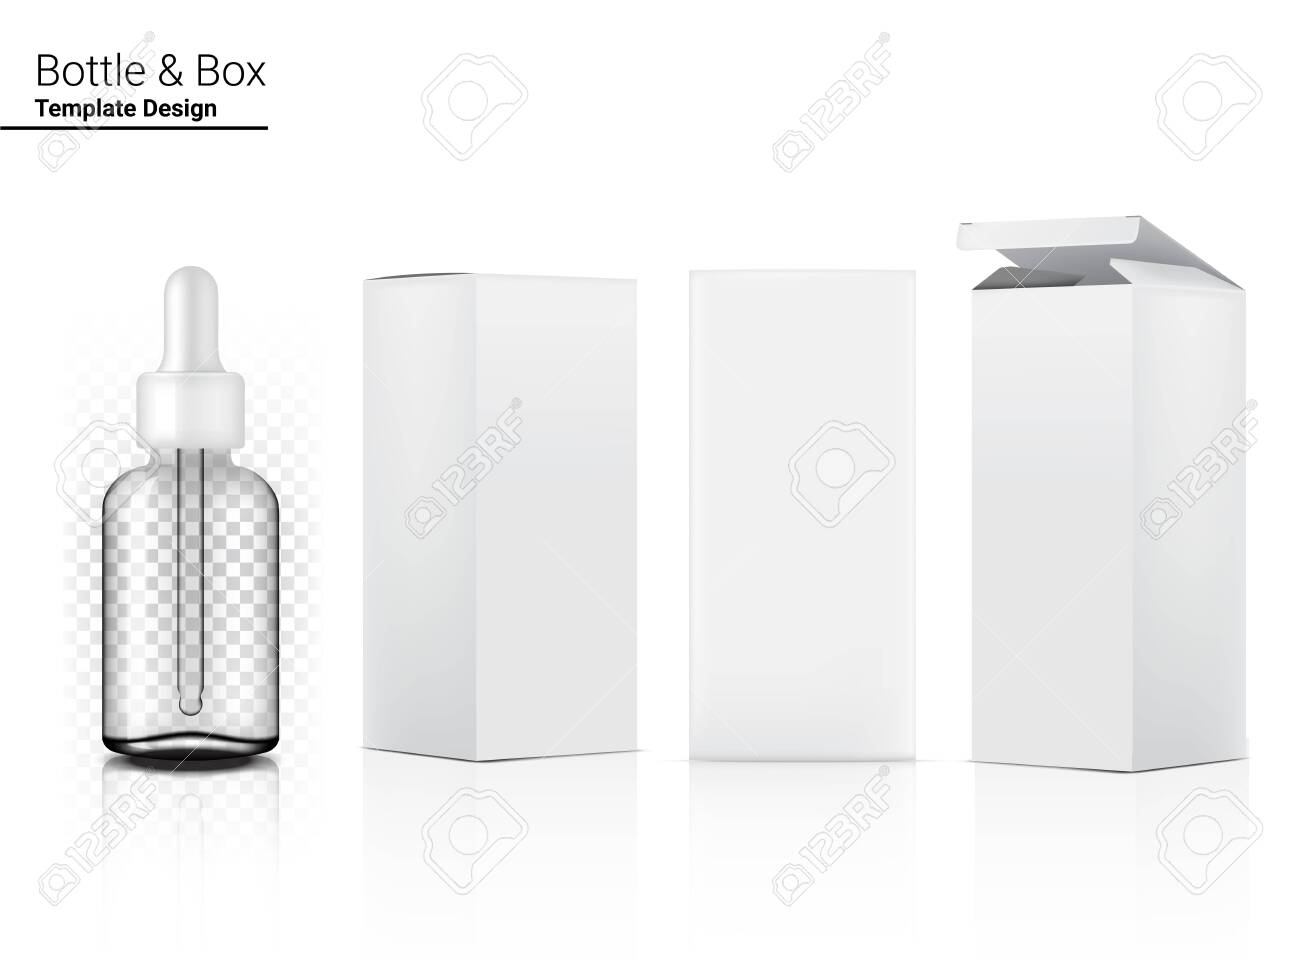 3D Transparent Dropper Bottle Mock up Realistic Cosmetic and Box for Skincare Product on White Background Illustration. Health Care and Medical Concept Design. - 142186920